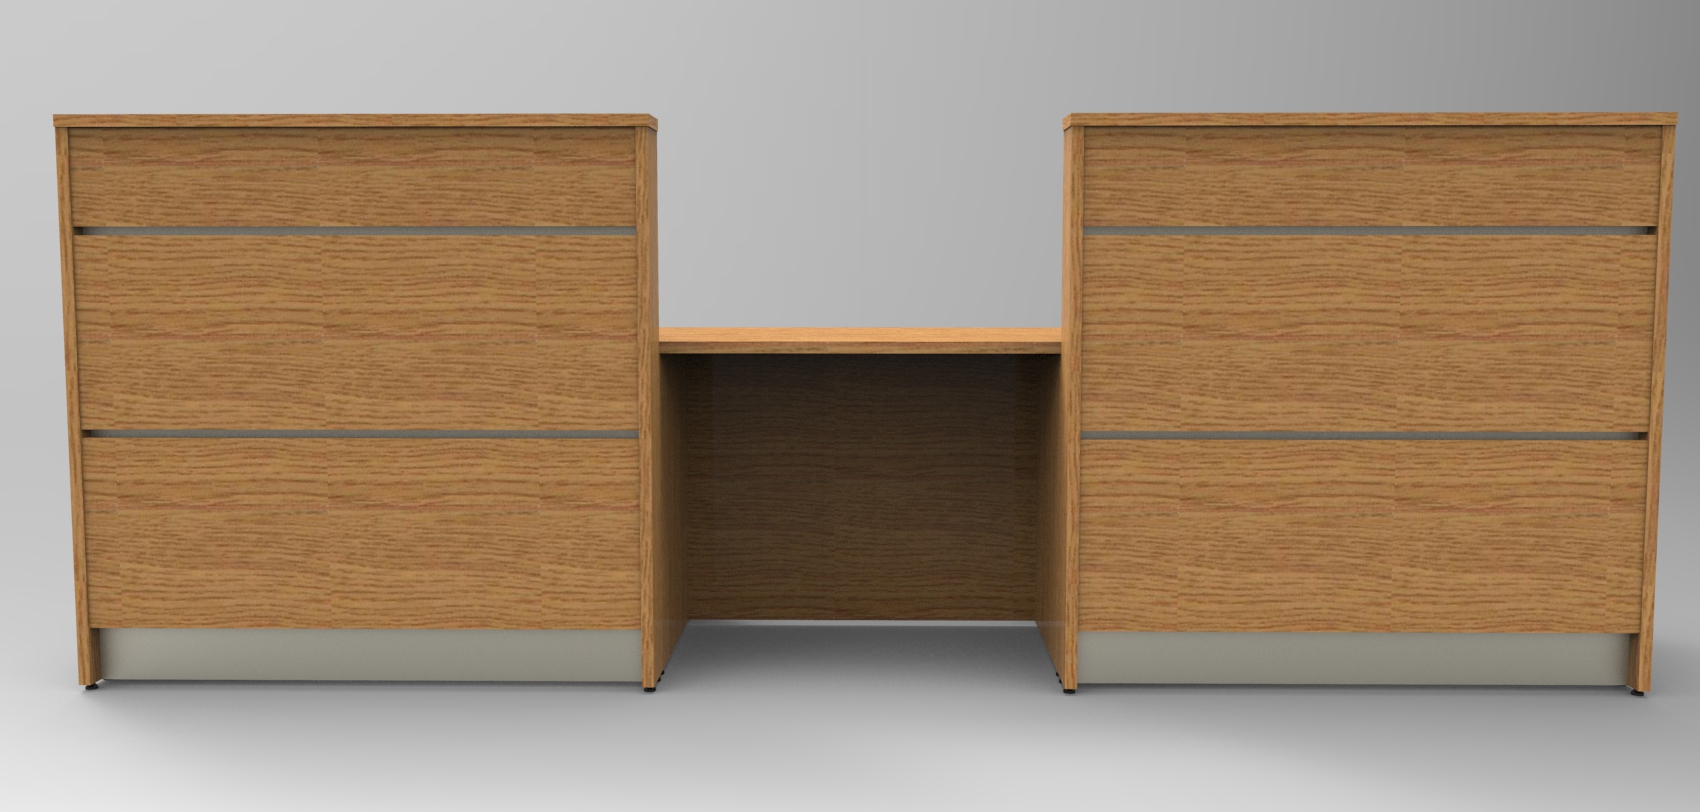 Image 6UA - Tall Standard Oak DDA recption desk